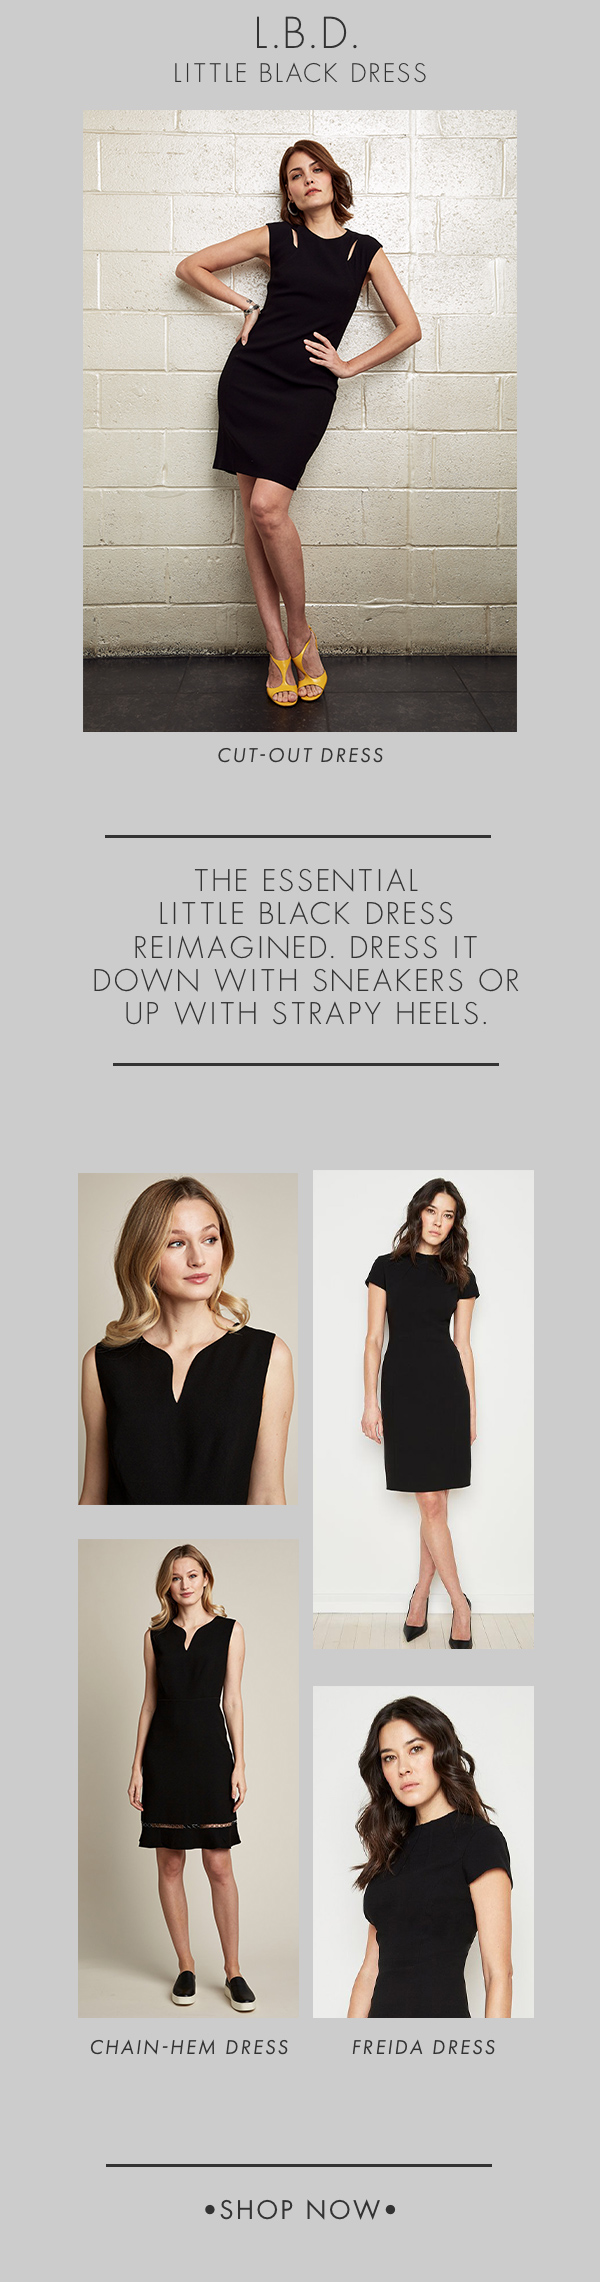 Little Black Dress - Dress It Down With Sneakers or Up with Strapy Heels